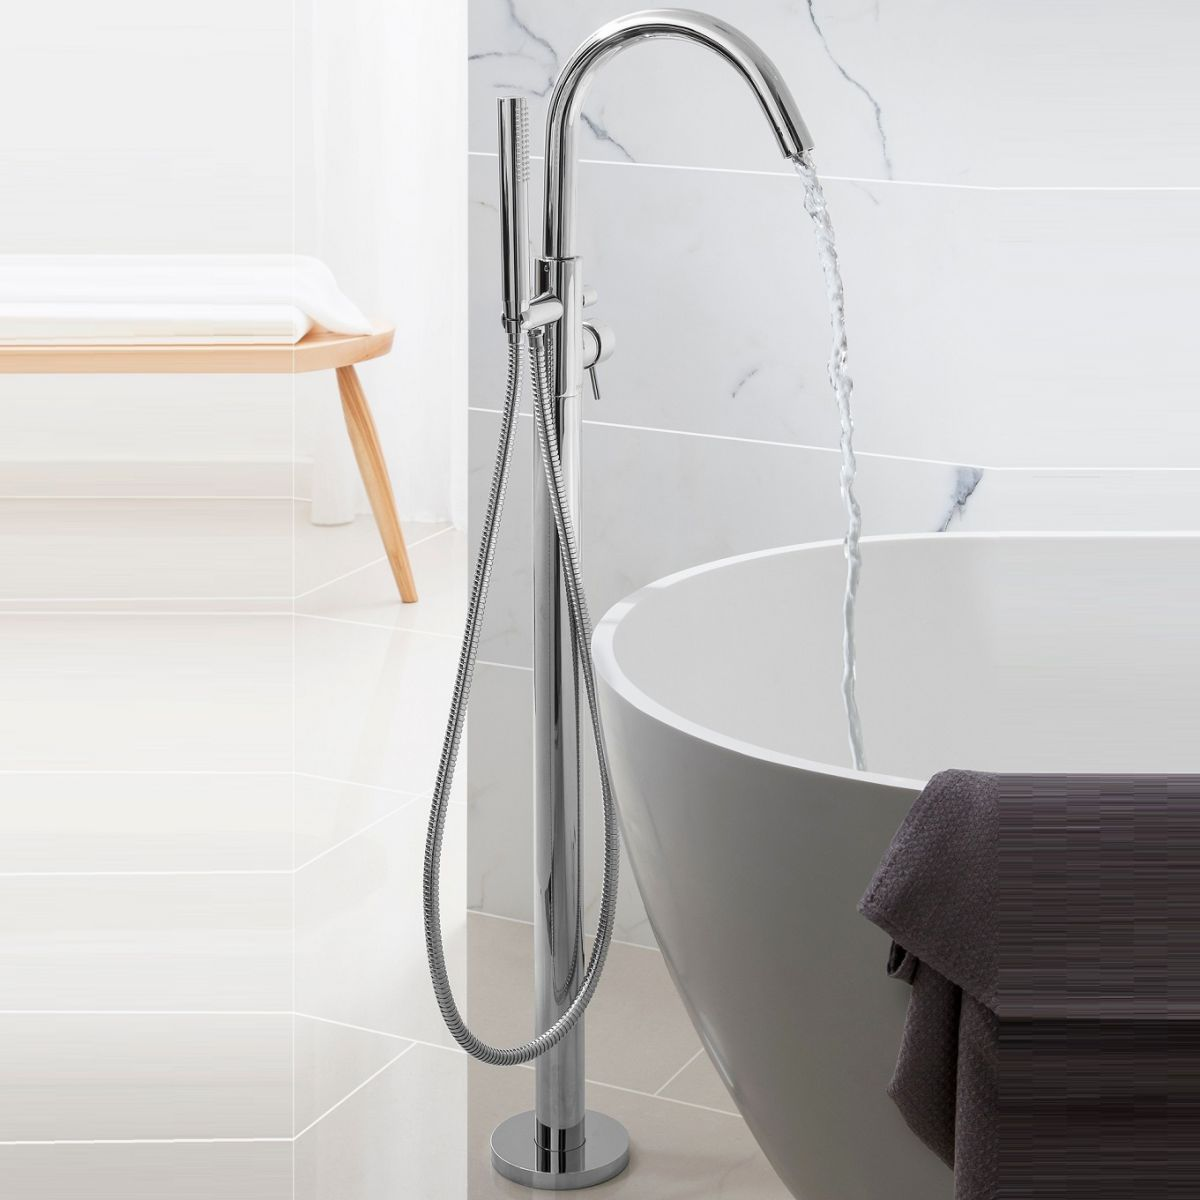 Freestanding Bath Taps Crosswater Design Freestanding Bath Shower Mixer Uk